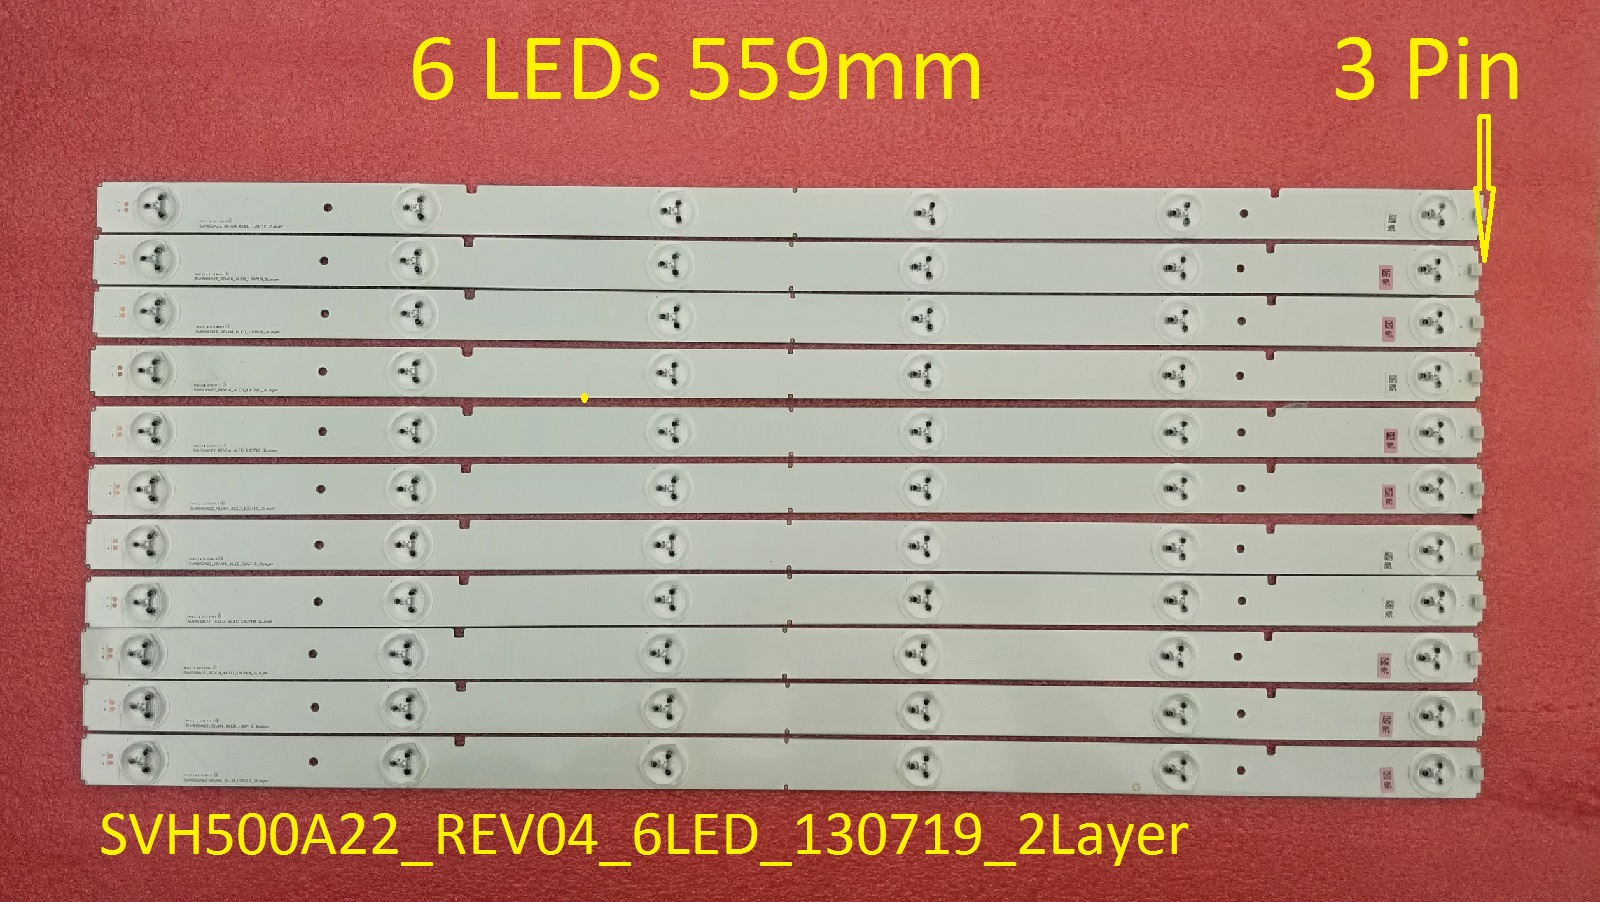 2 Pieces LED50K20JD LED strip SVH500A22-REV04-6LED-130719-2Layer SVH500A22_REV04_6LED_130719_2Layer